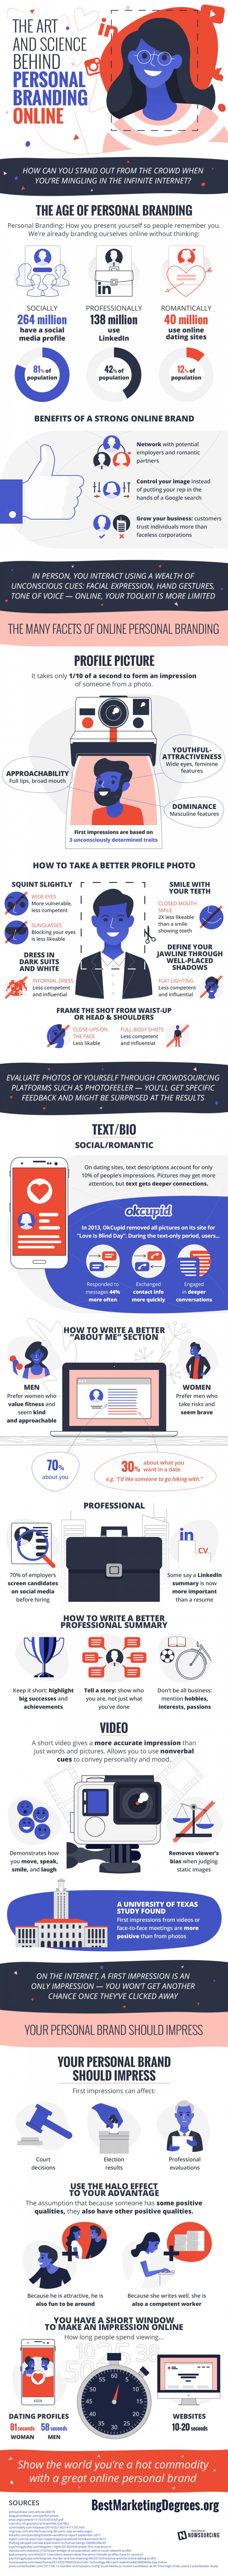 infographic explains the science behind personal branding and how to market yourself to consumers and employers